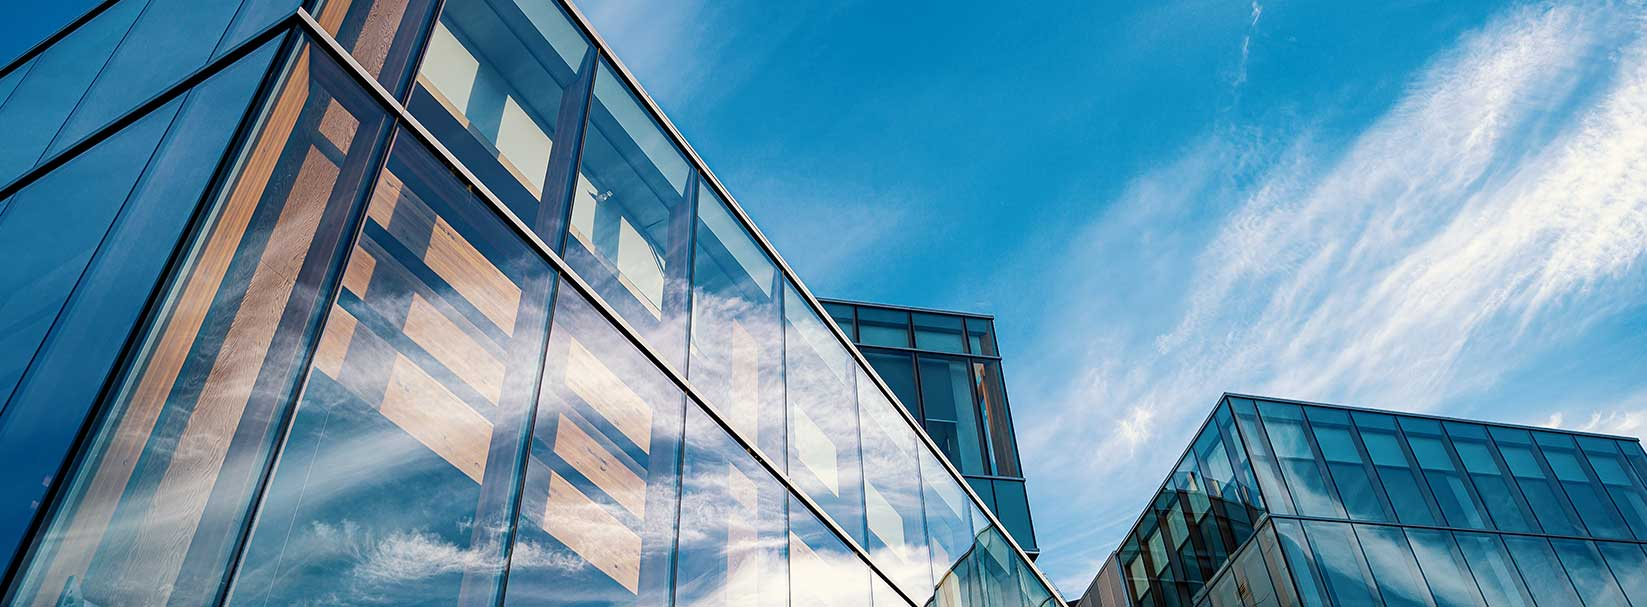 How to invest in commercial property - a beginner's guide